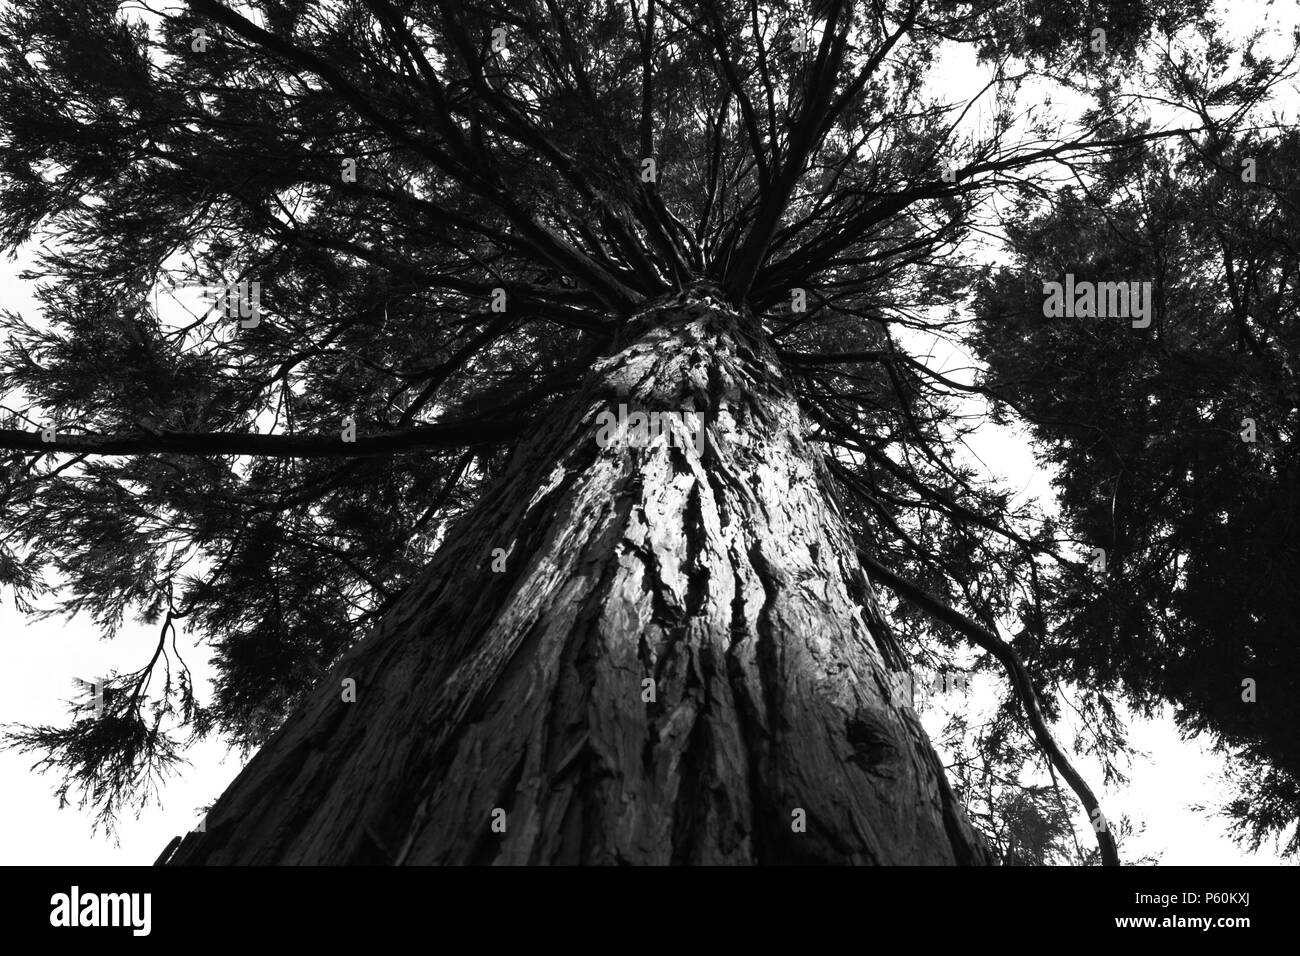 A view up the side of a pine tree to the canopy above, in black & white. - Stock Image